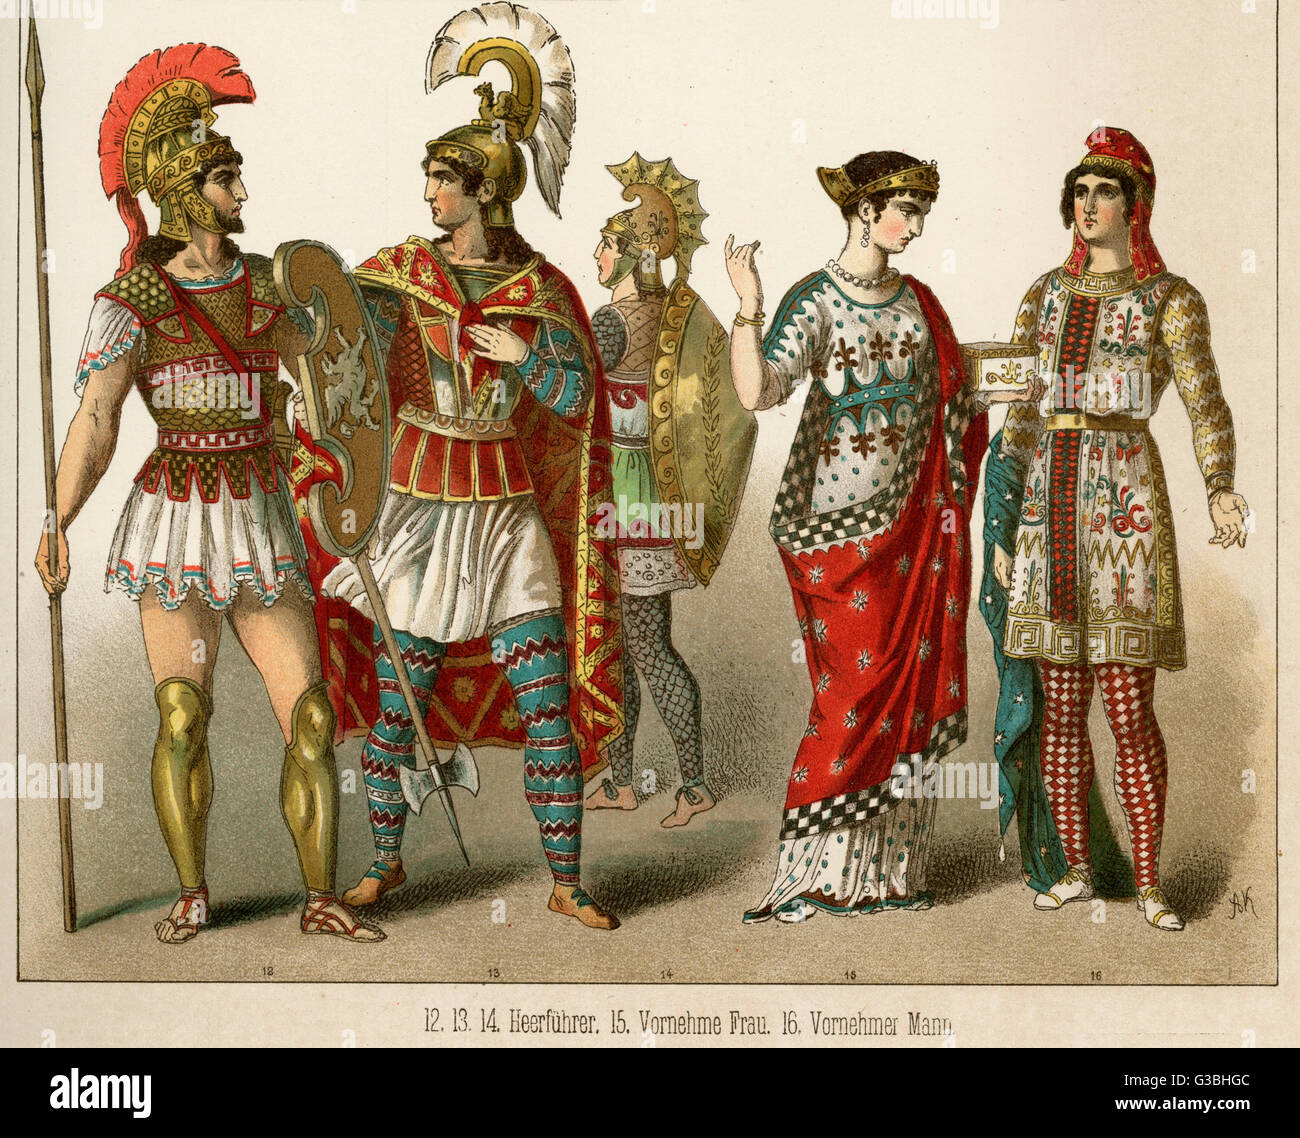 ANCIENT ASIA MINOR  Protective clothing and weaponry of Warriors and the elaborately patterned clothing of man and - Stock Image